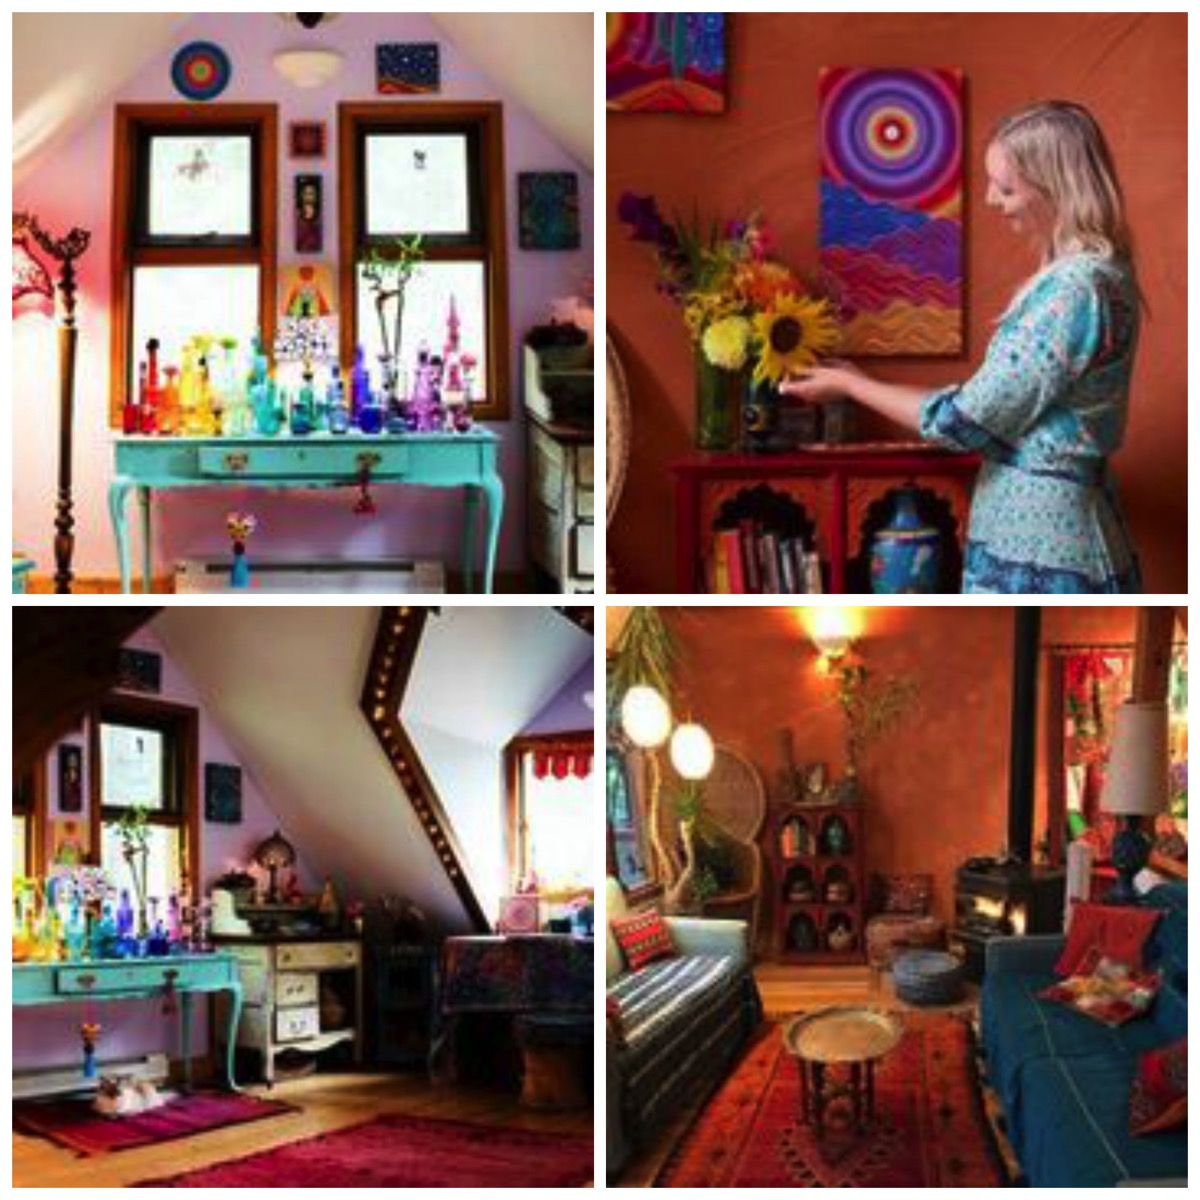 Elspeth mclean home tour featured mandala stone artist